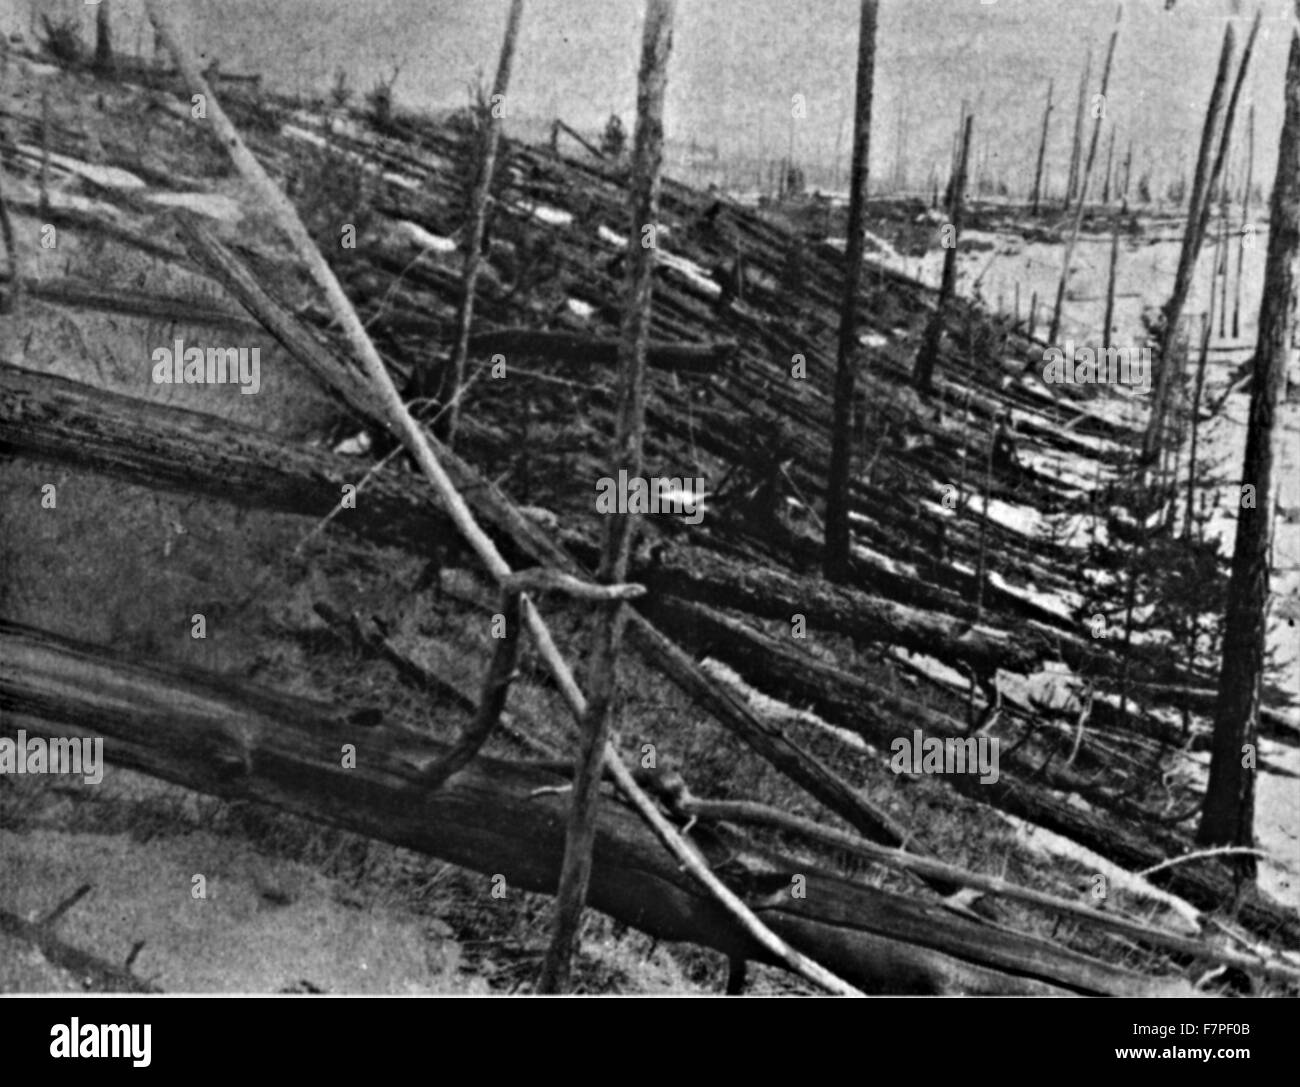 Photograph from the Tunguska event was a large explosion that occurred near the Stony Tunguska River, in what is - Stock Image